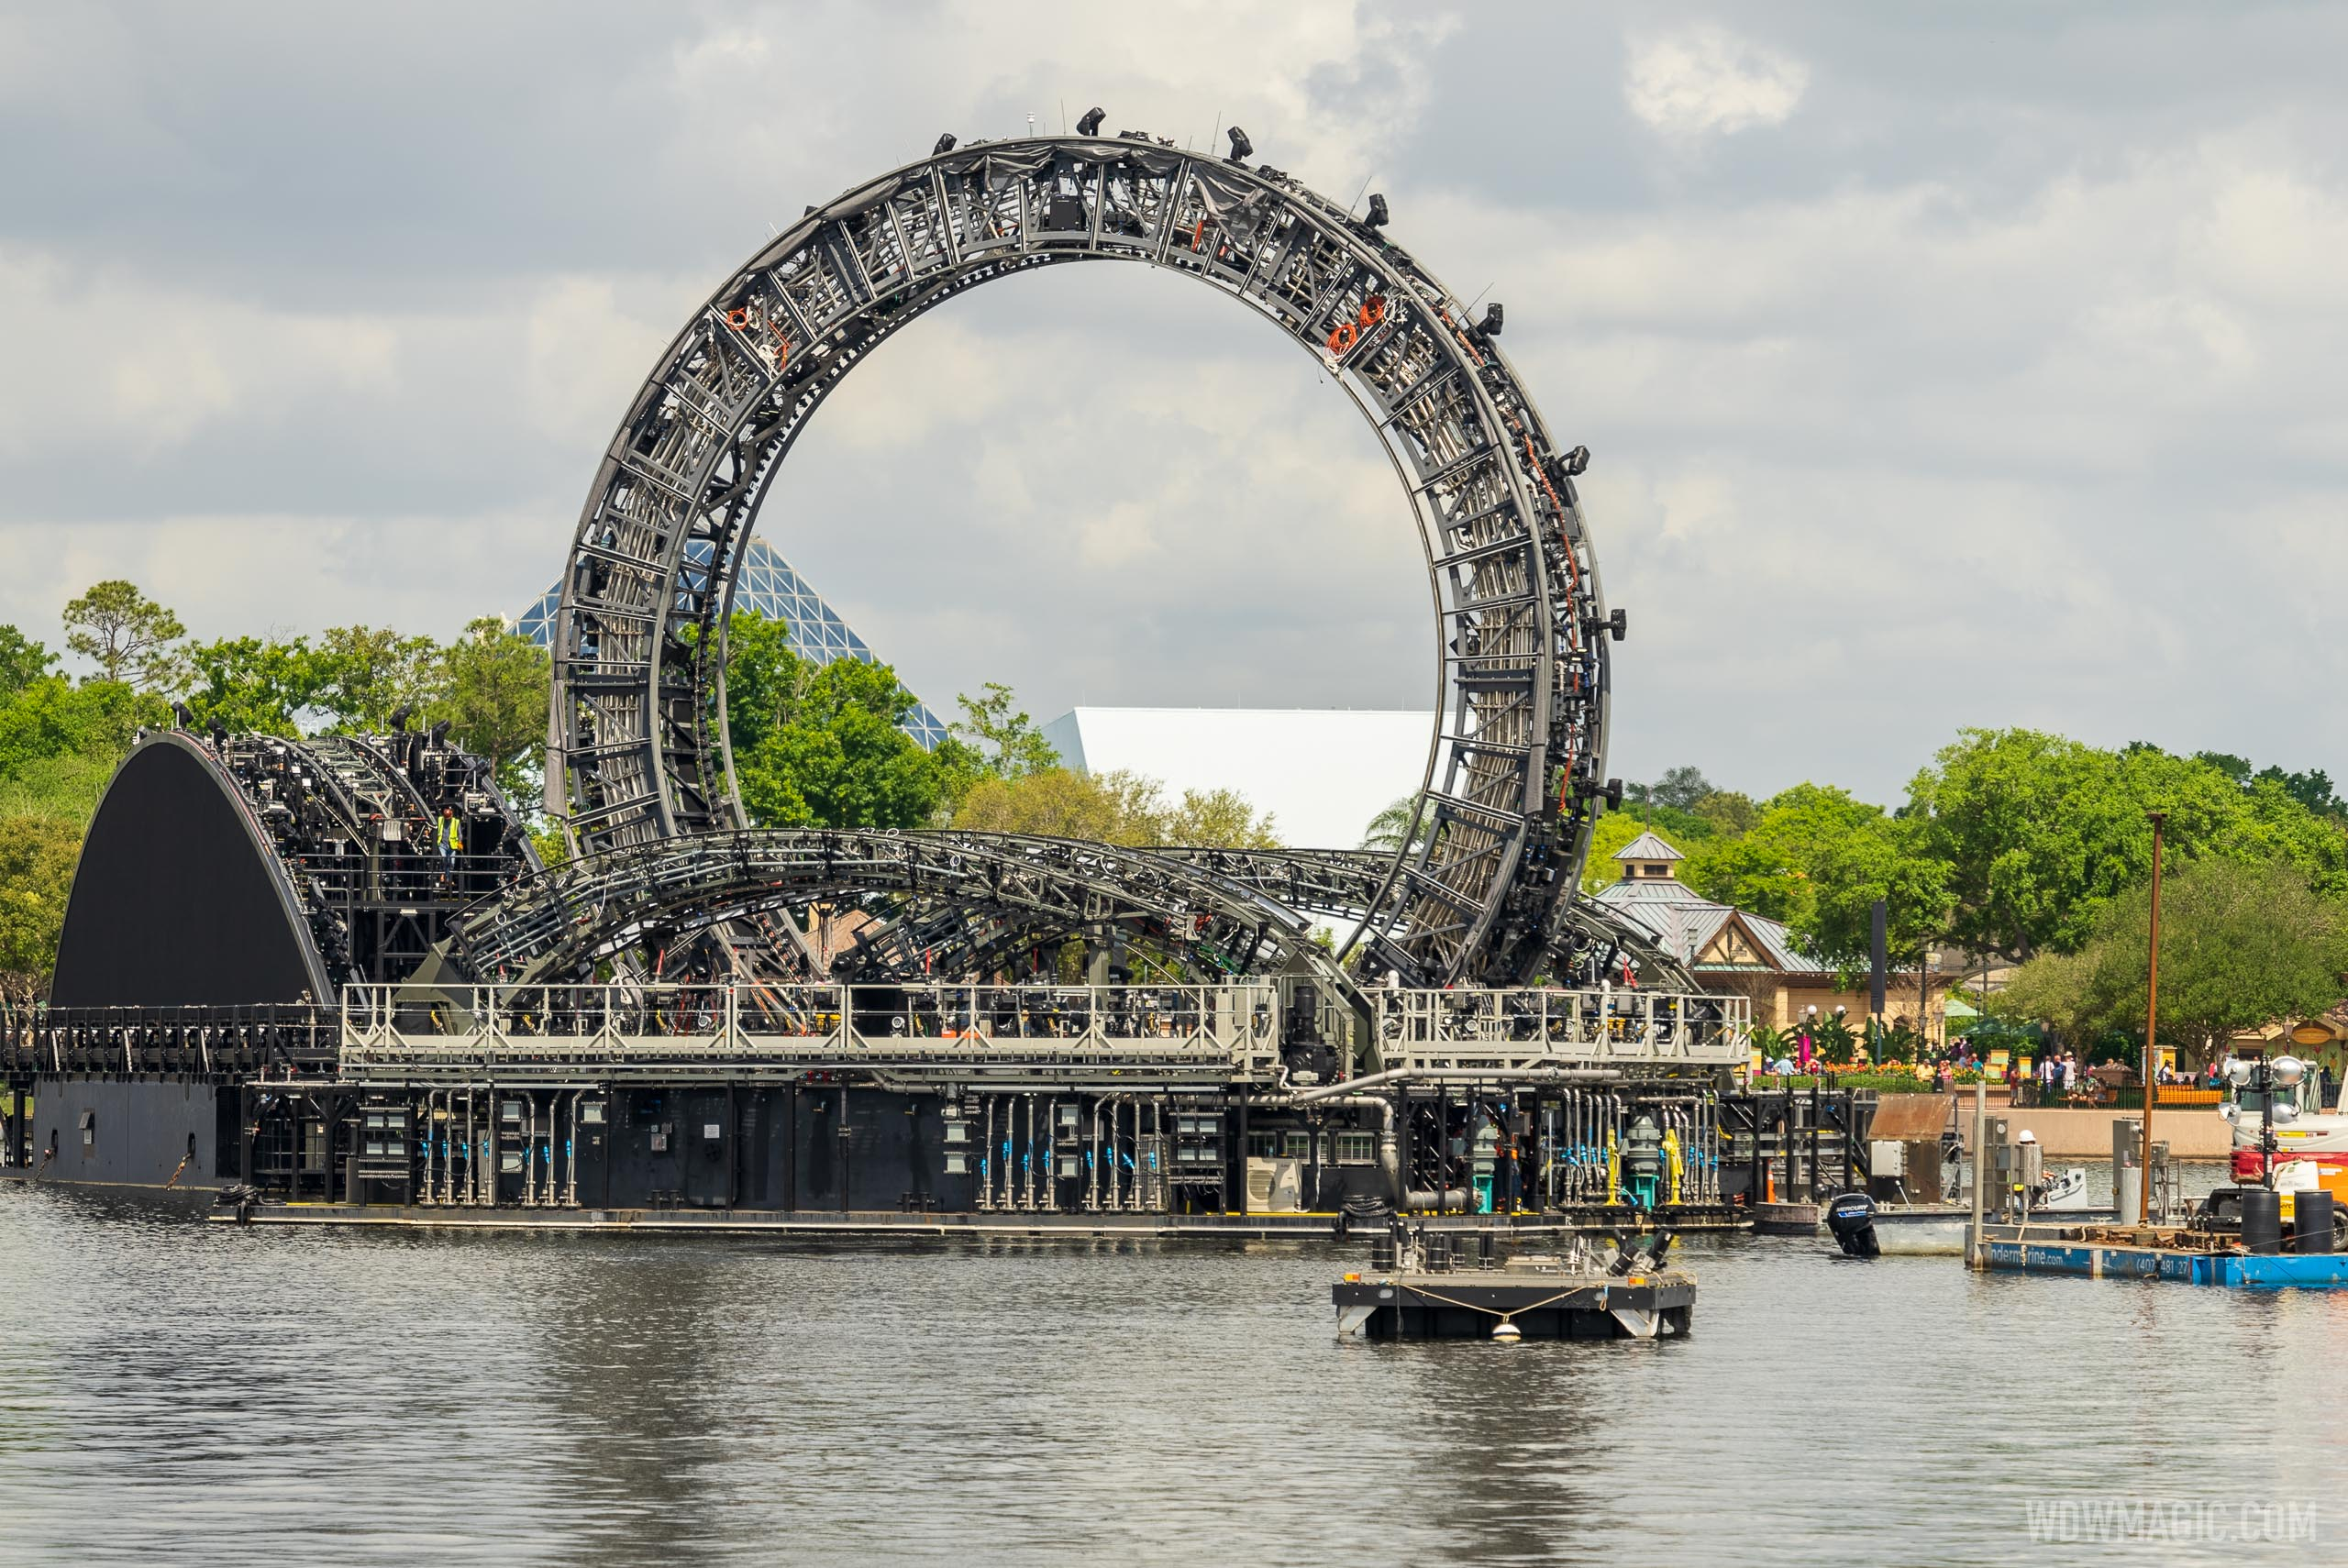 Harmonious firework barges in position - March 31 2021